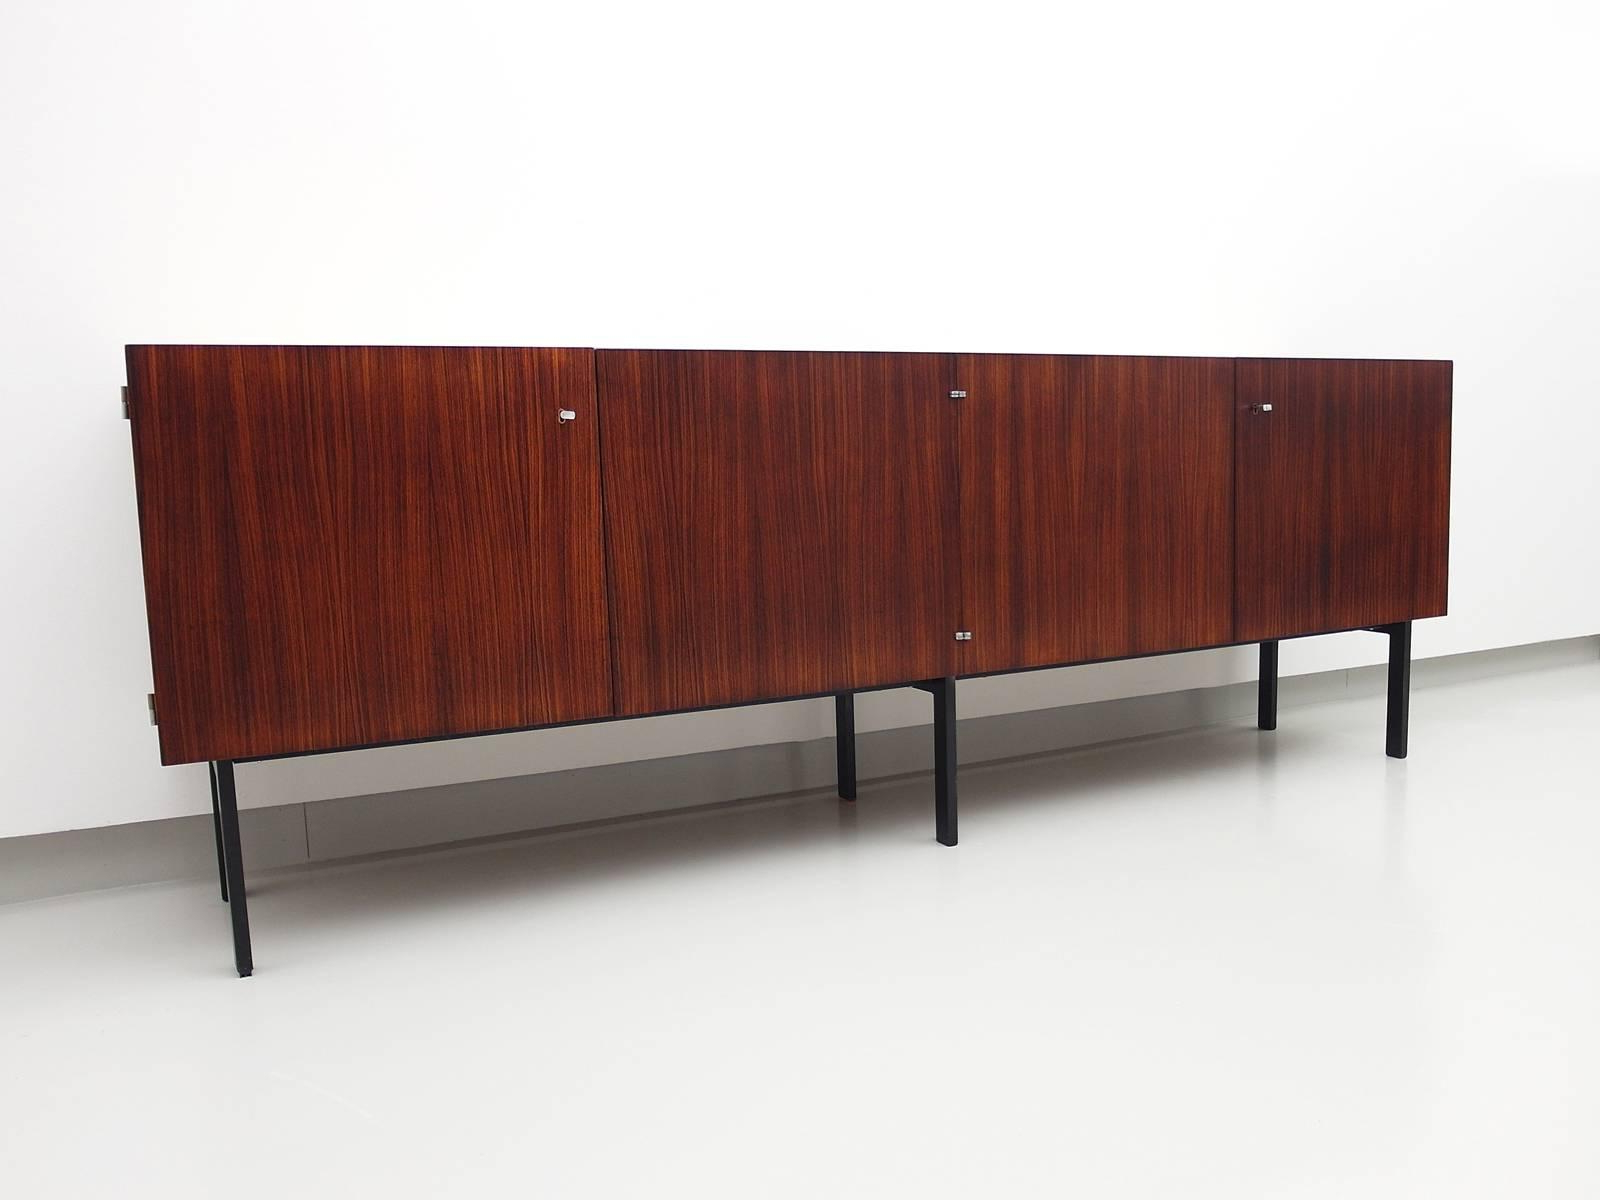 Current Etienne Sideboards In Rosewood Sideboard Attributed To Etienne Fermigier For Meubles Et Fonction,   (View 10 of 20)